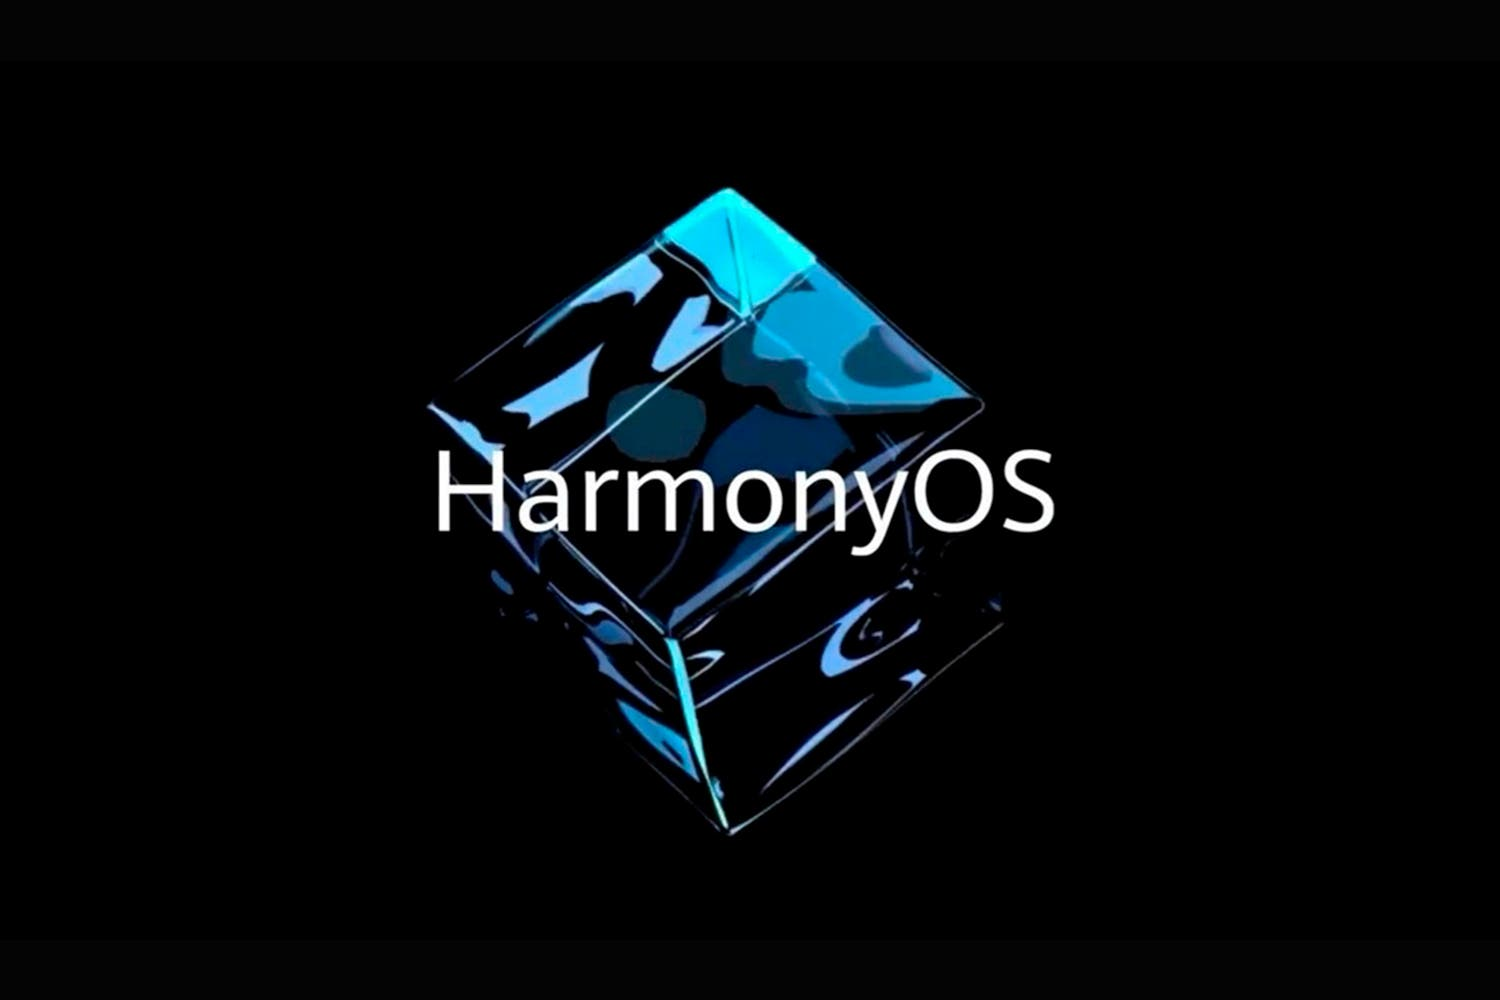 Huawei lanzará la primera beta de HarmonyOS, su alternativa a Android, en diciembre, Cloud Pocket 365